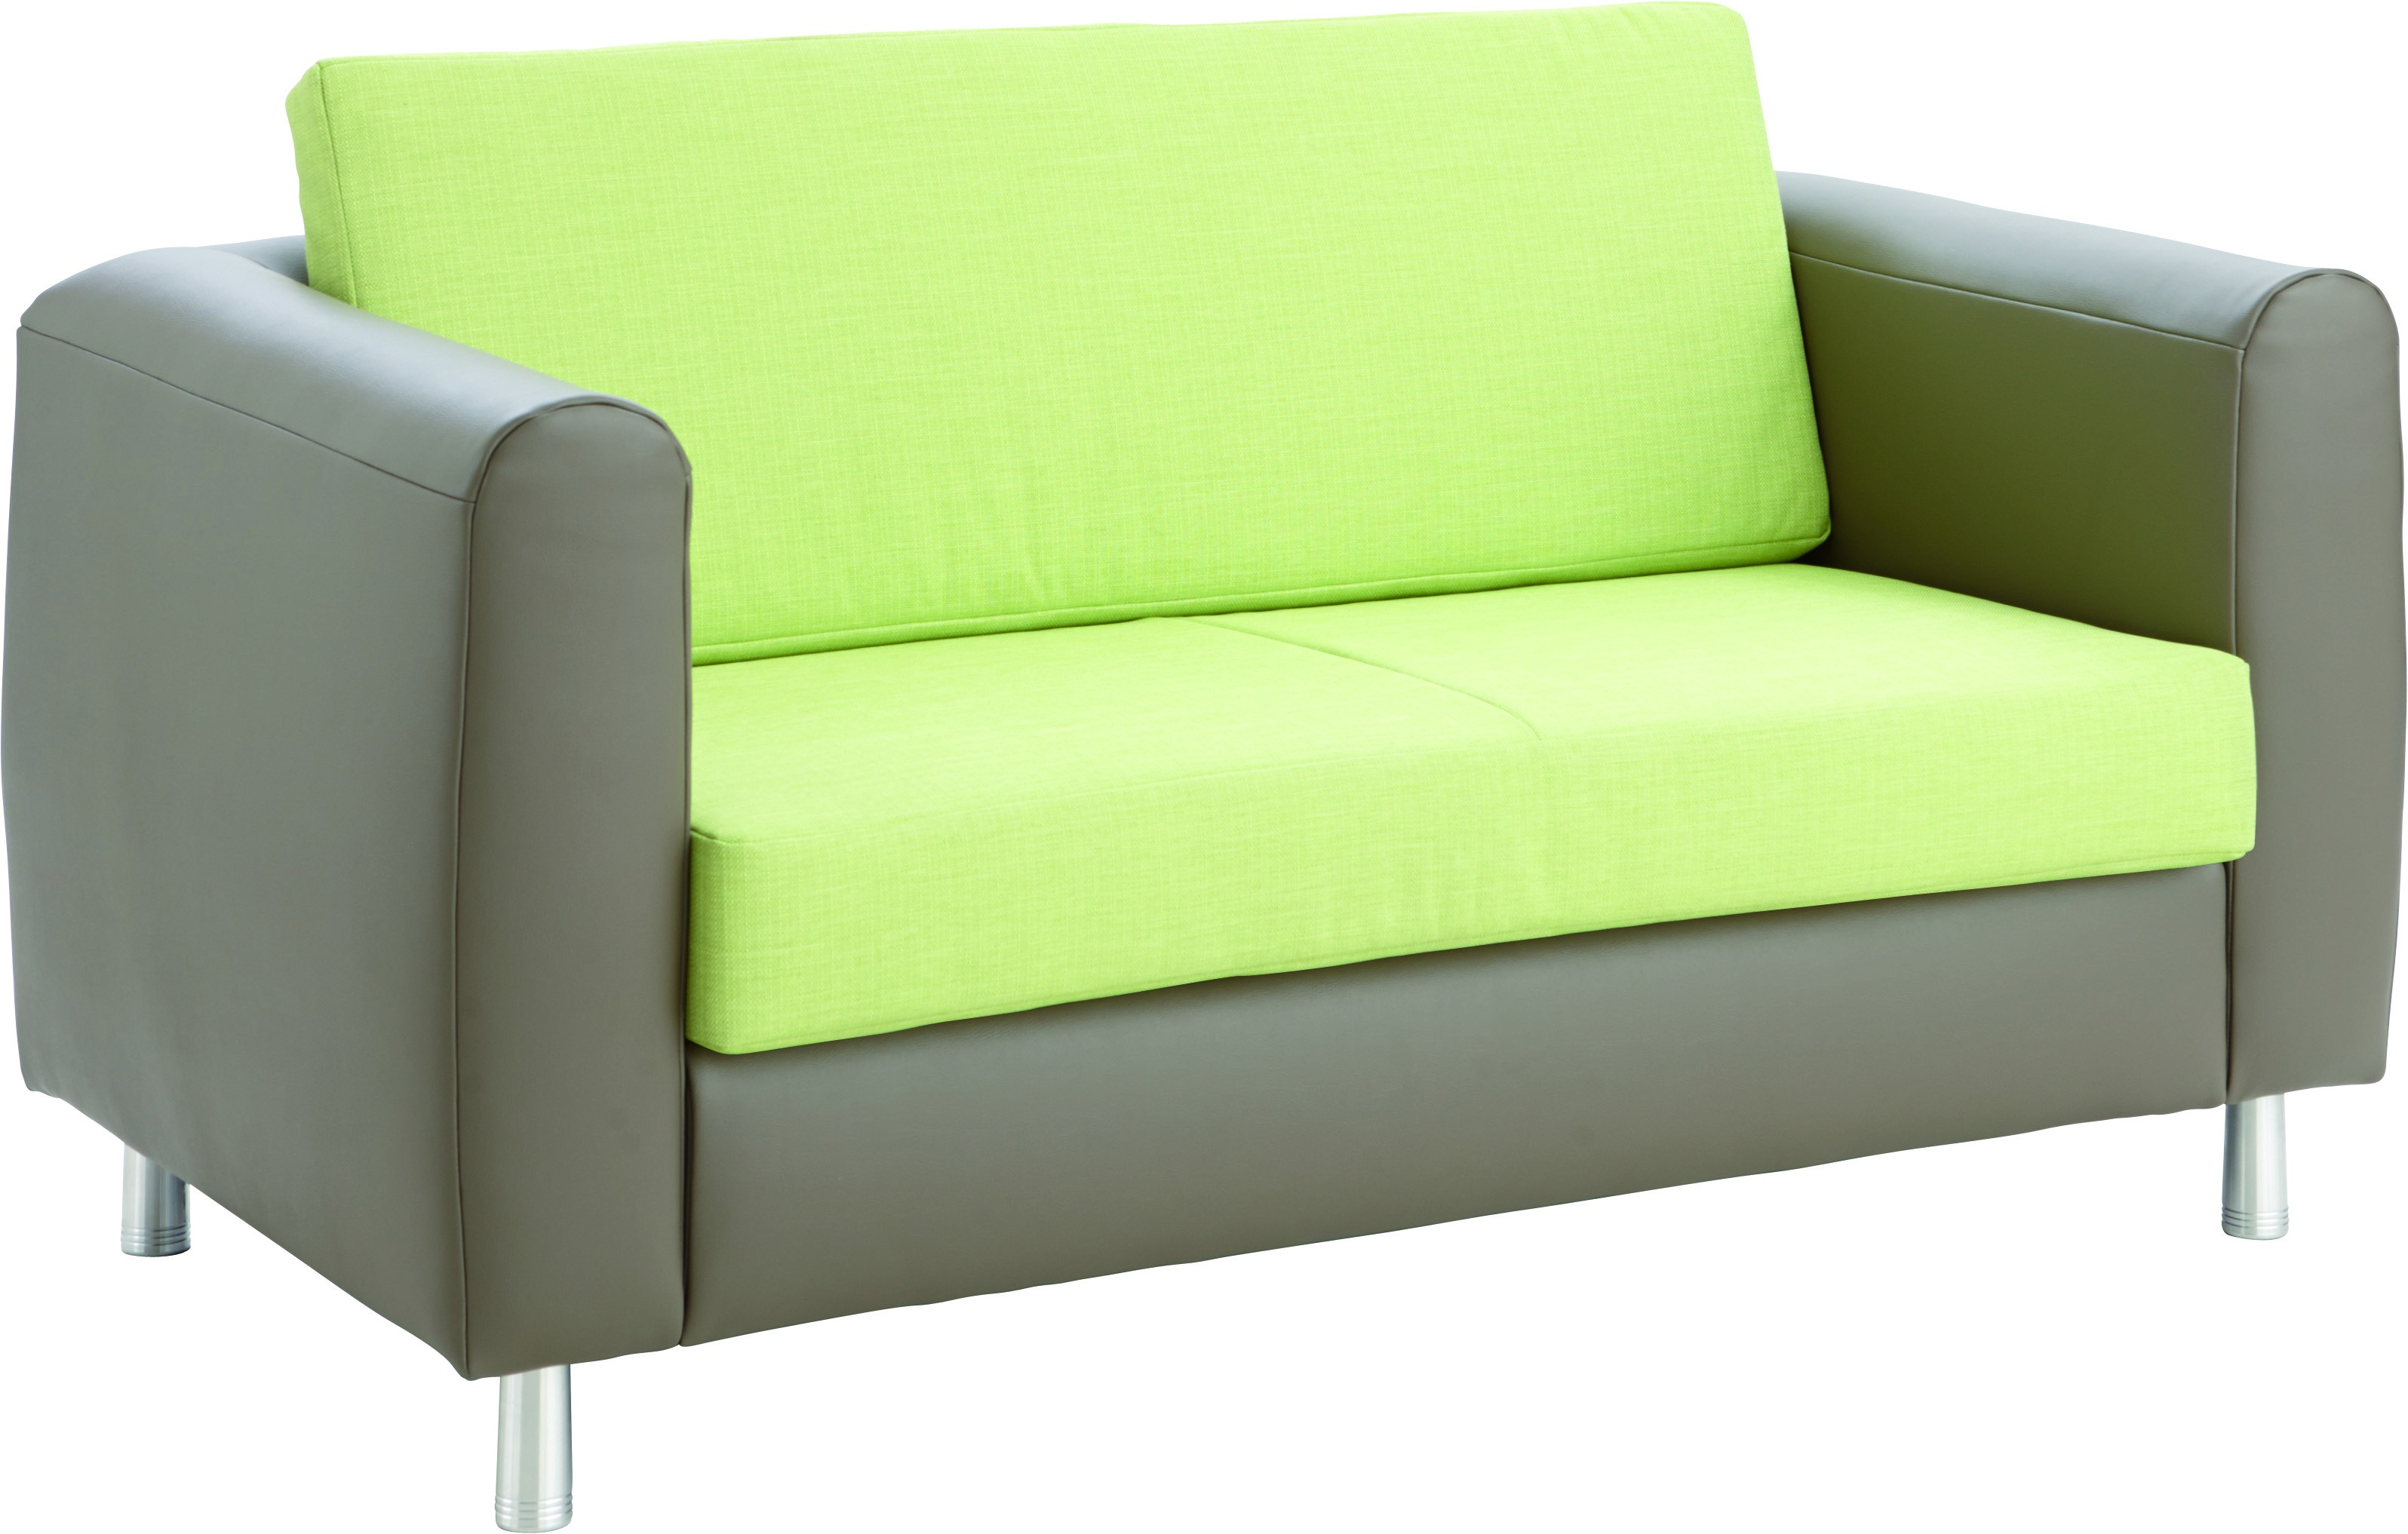 sofa with removable cushions synthetic leather by haba